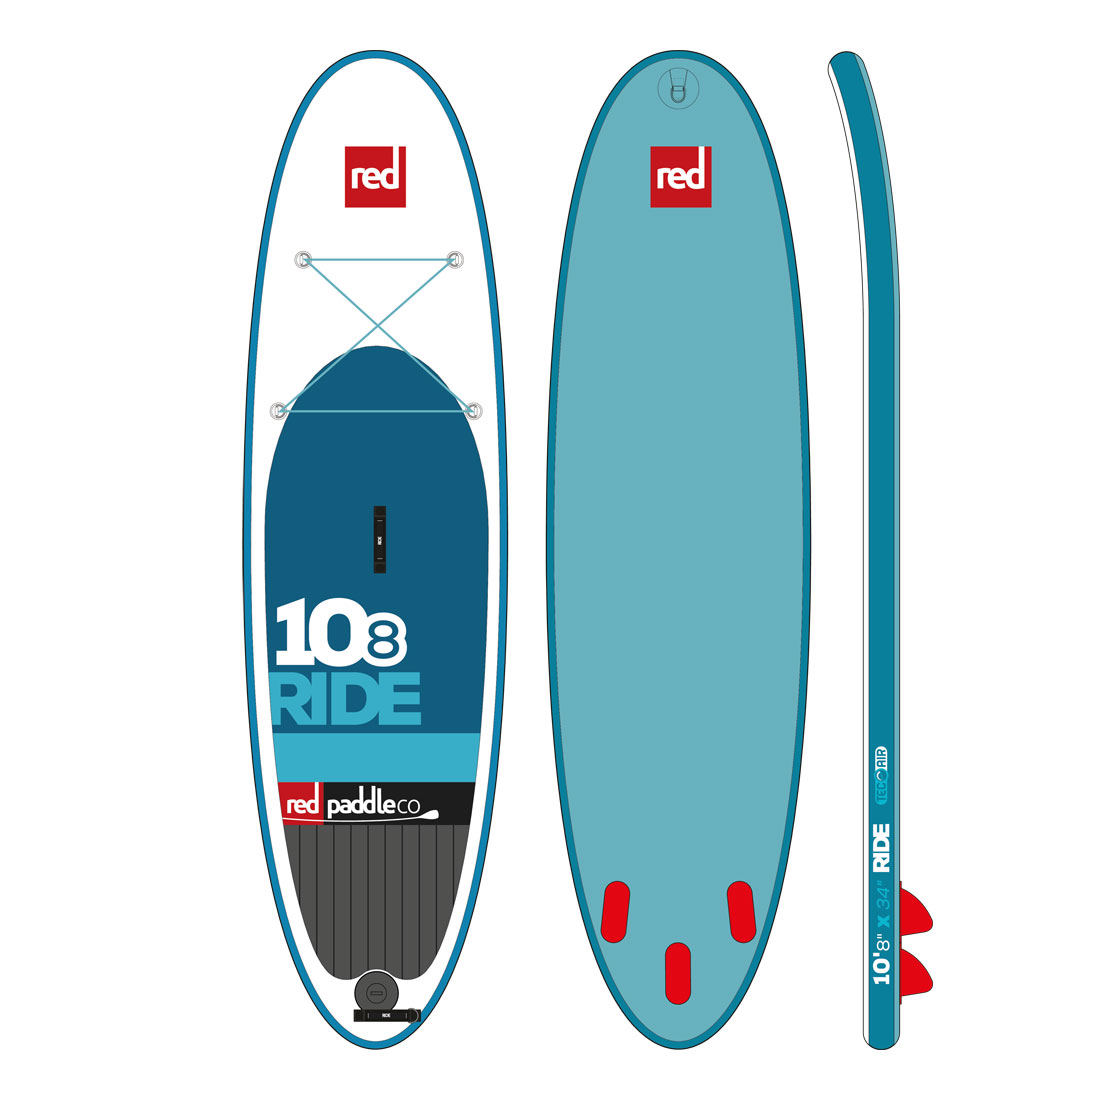 "RED 10'8"" RIDE model 2016"